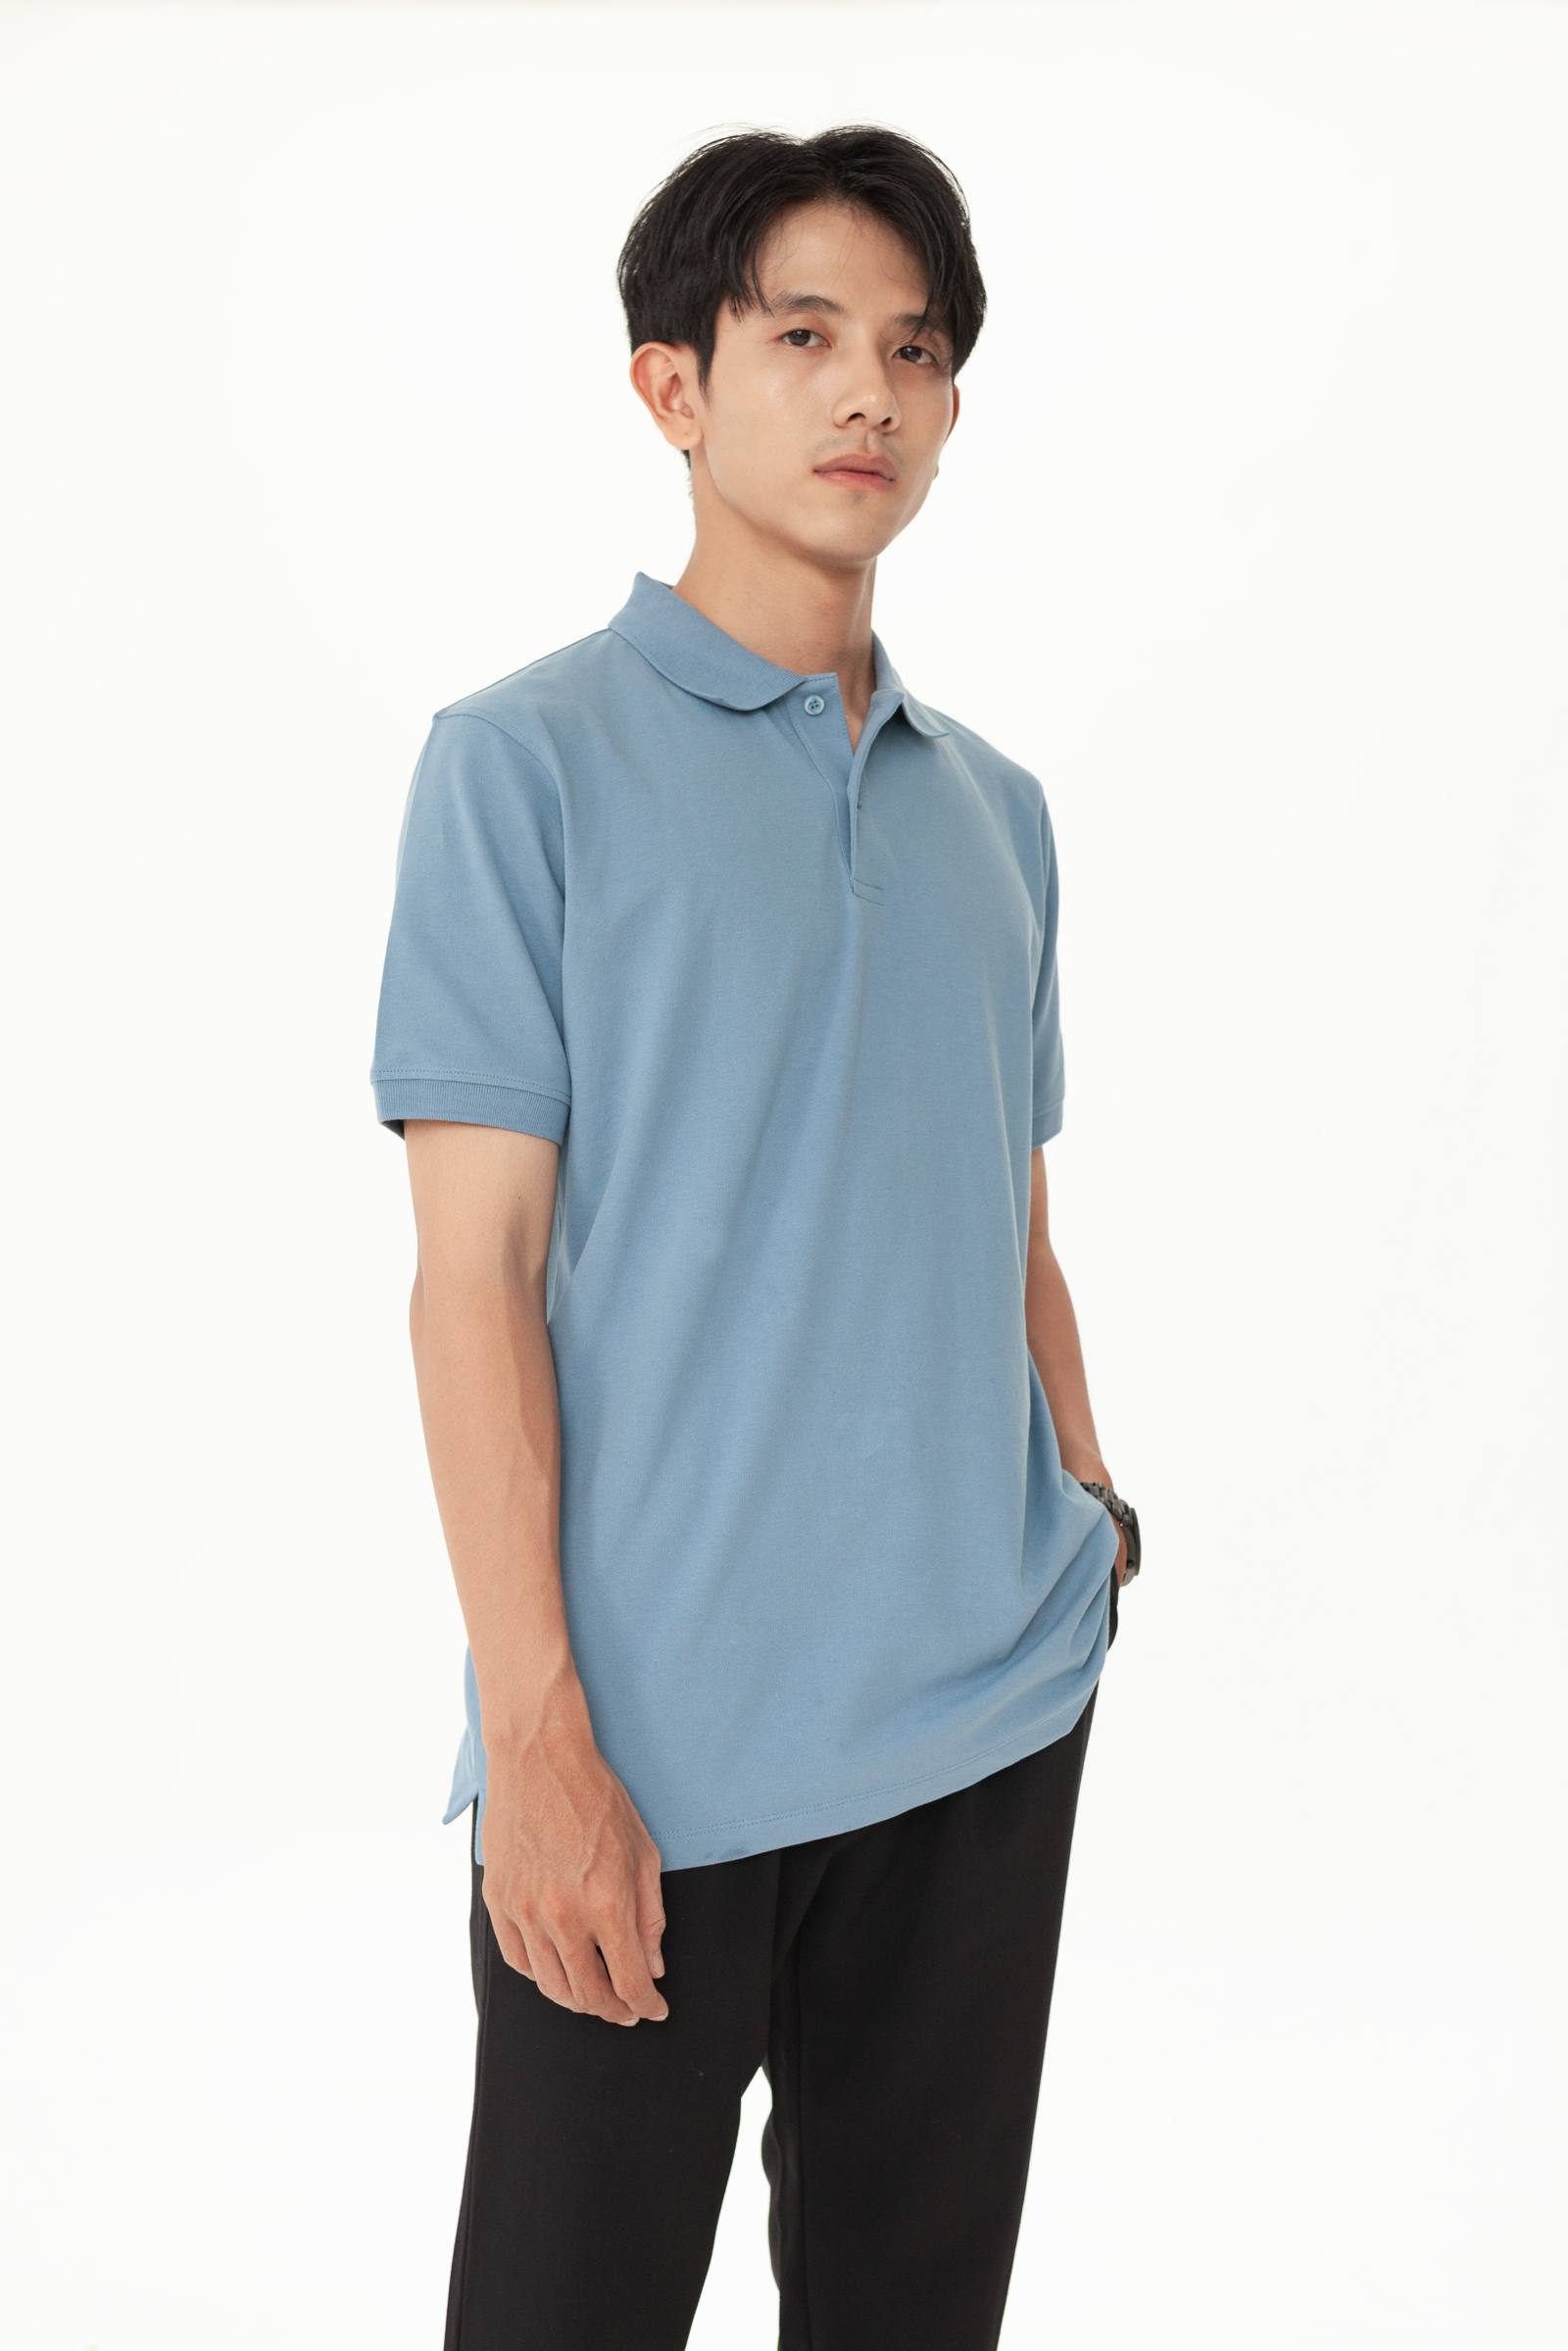 Look Fitteed Polo